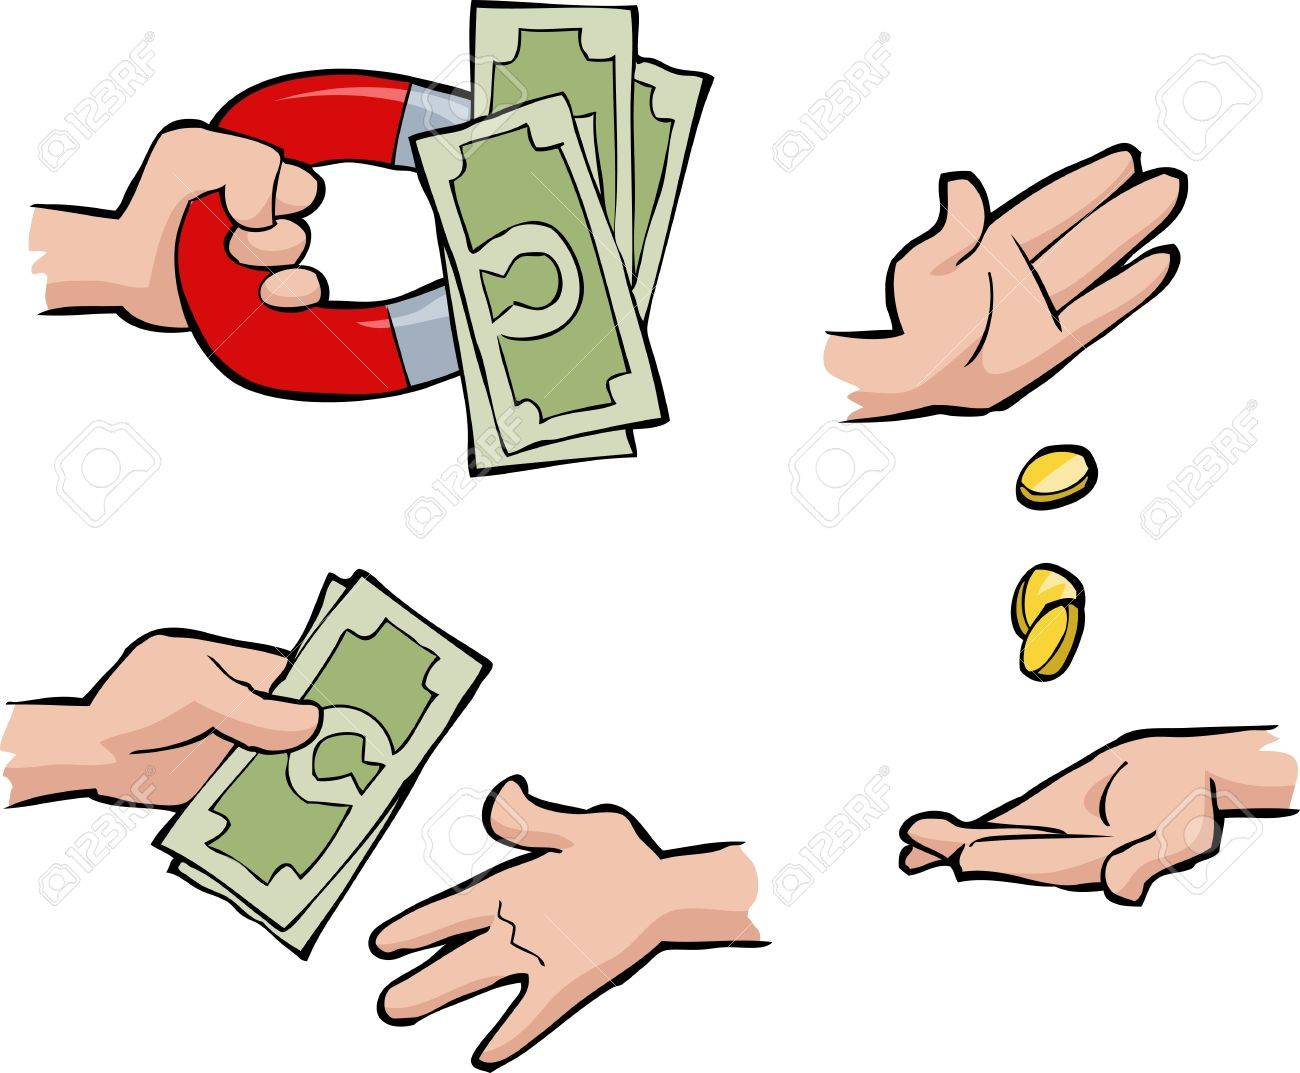 Set of hands with money illustration - 21020251